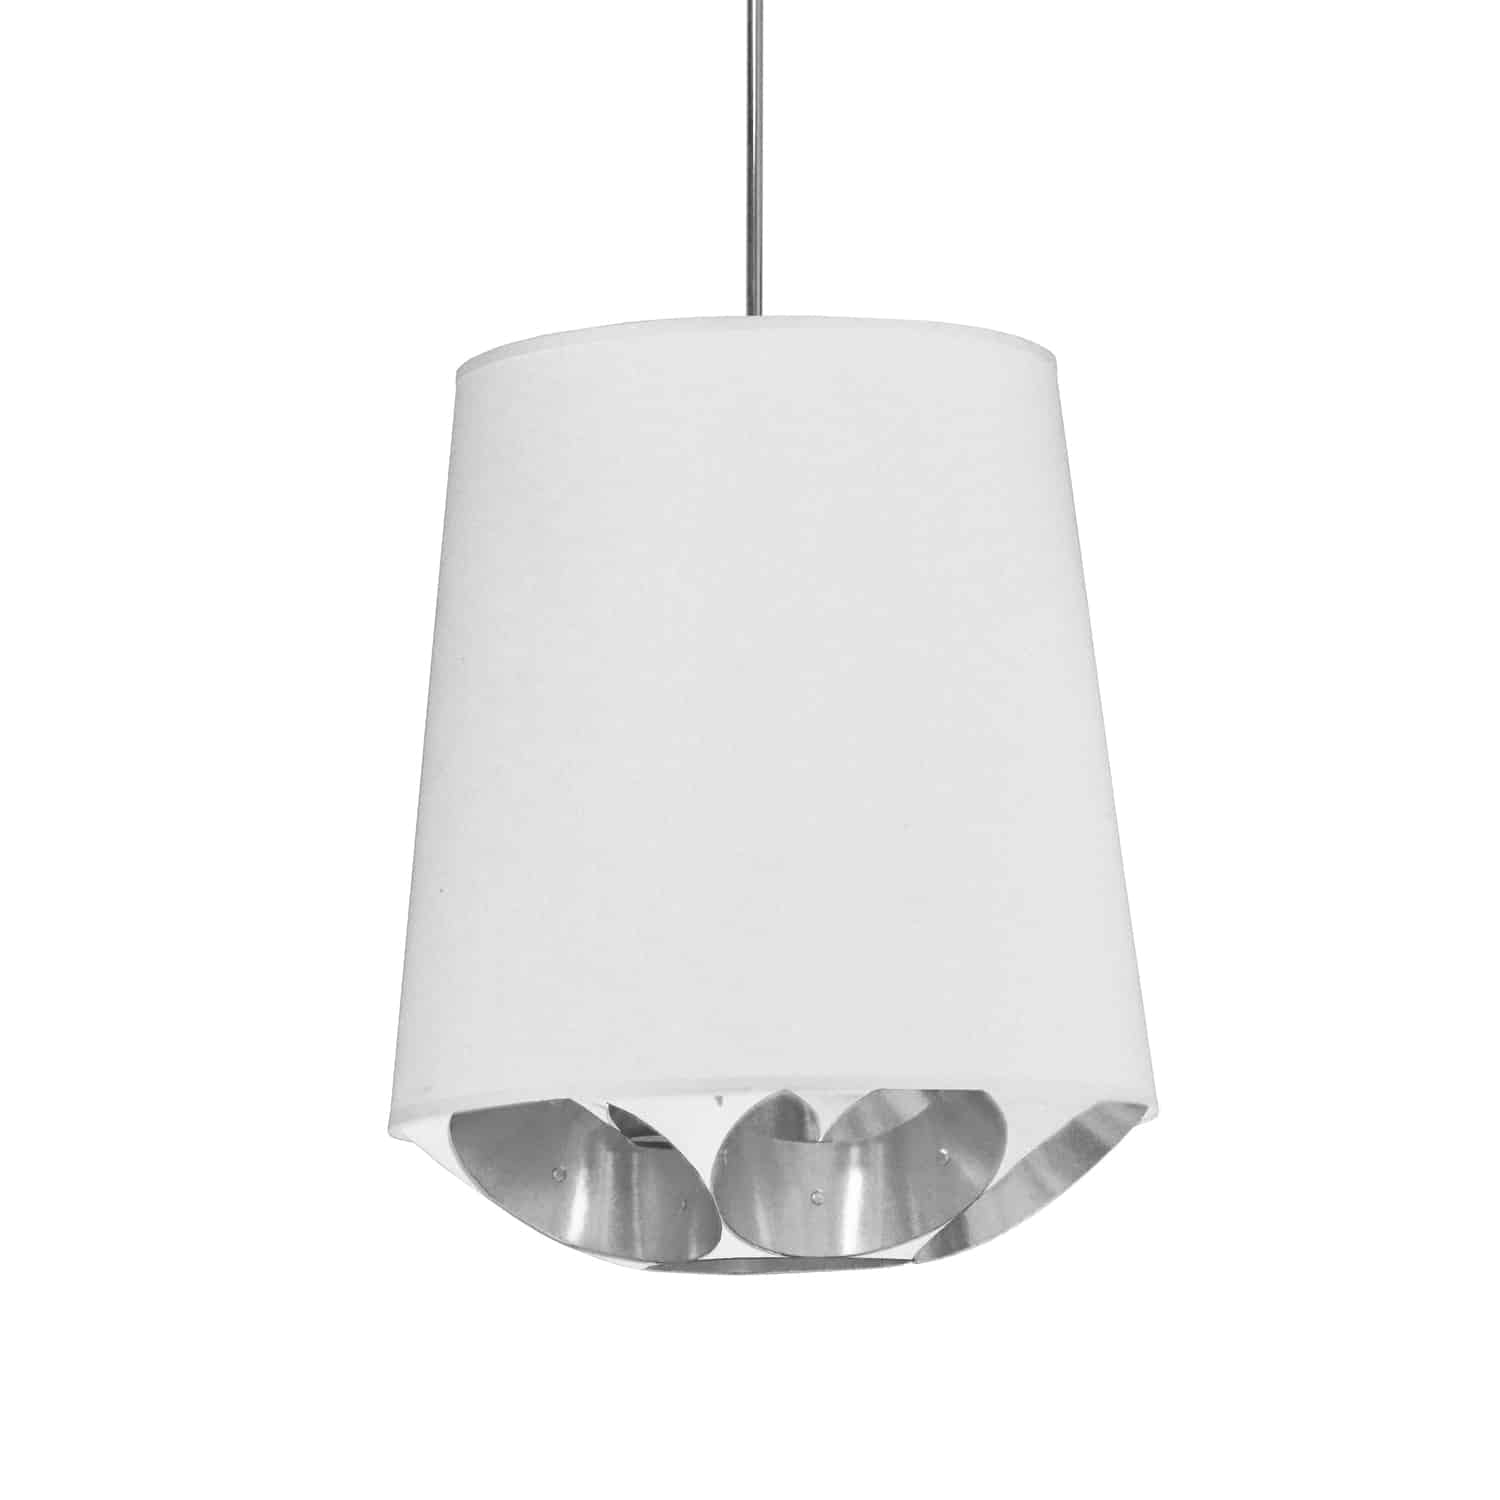 1 Light Hadleigh Pendant White on Silver Small Polished Chrome